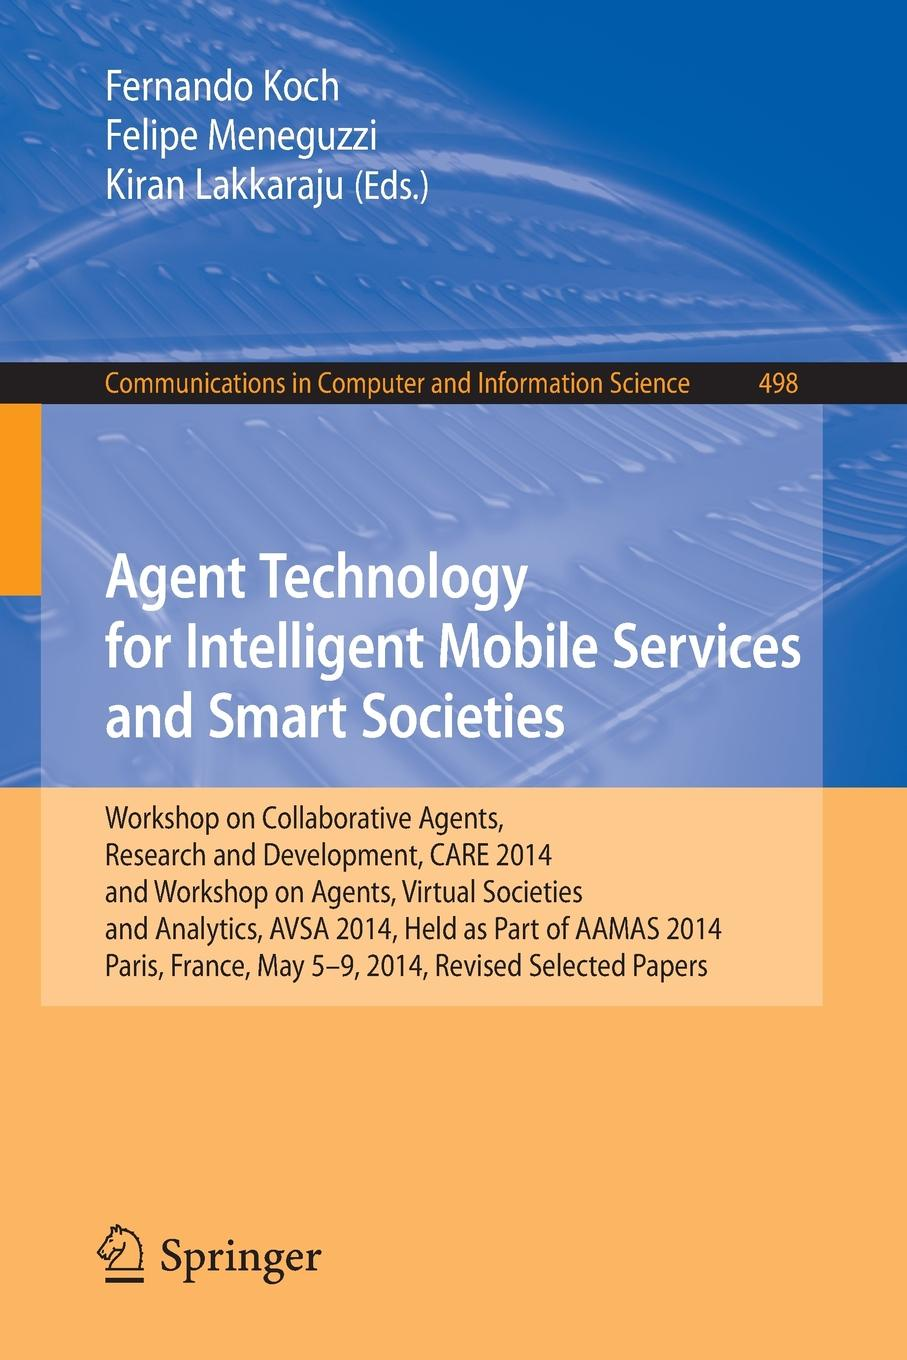 Agent Technology for Intelligent Mobile Services and Smart Societies. Workshop on Collaborative Agents, Research and Development, CARE 2014, and Workshop on Agents, Virtual Societies and Analytics, AVSA 2014, Held as Part of AAMAS 2014... mobile agents